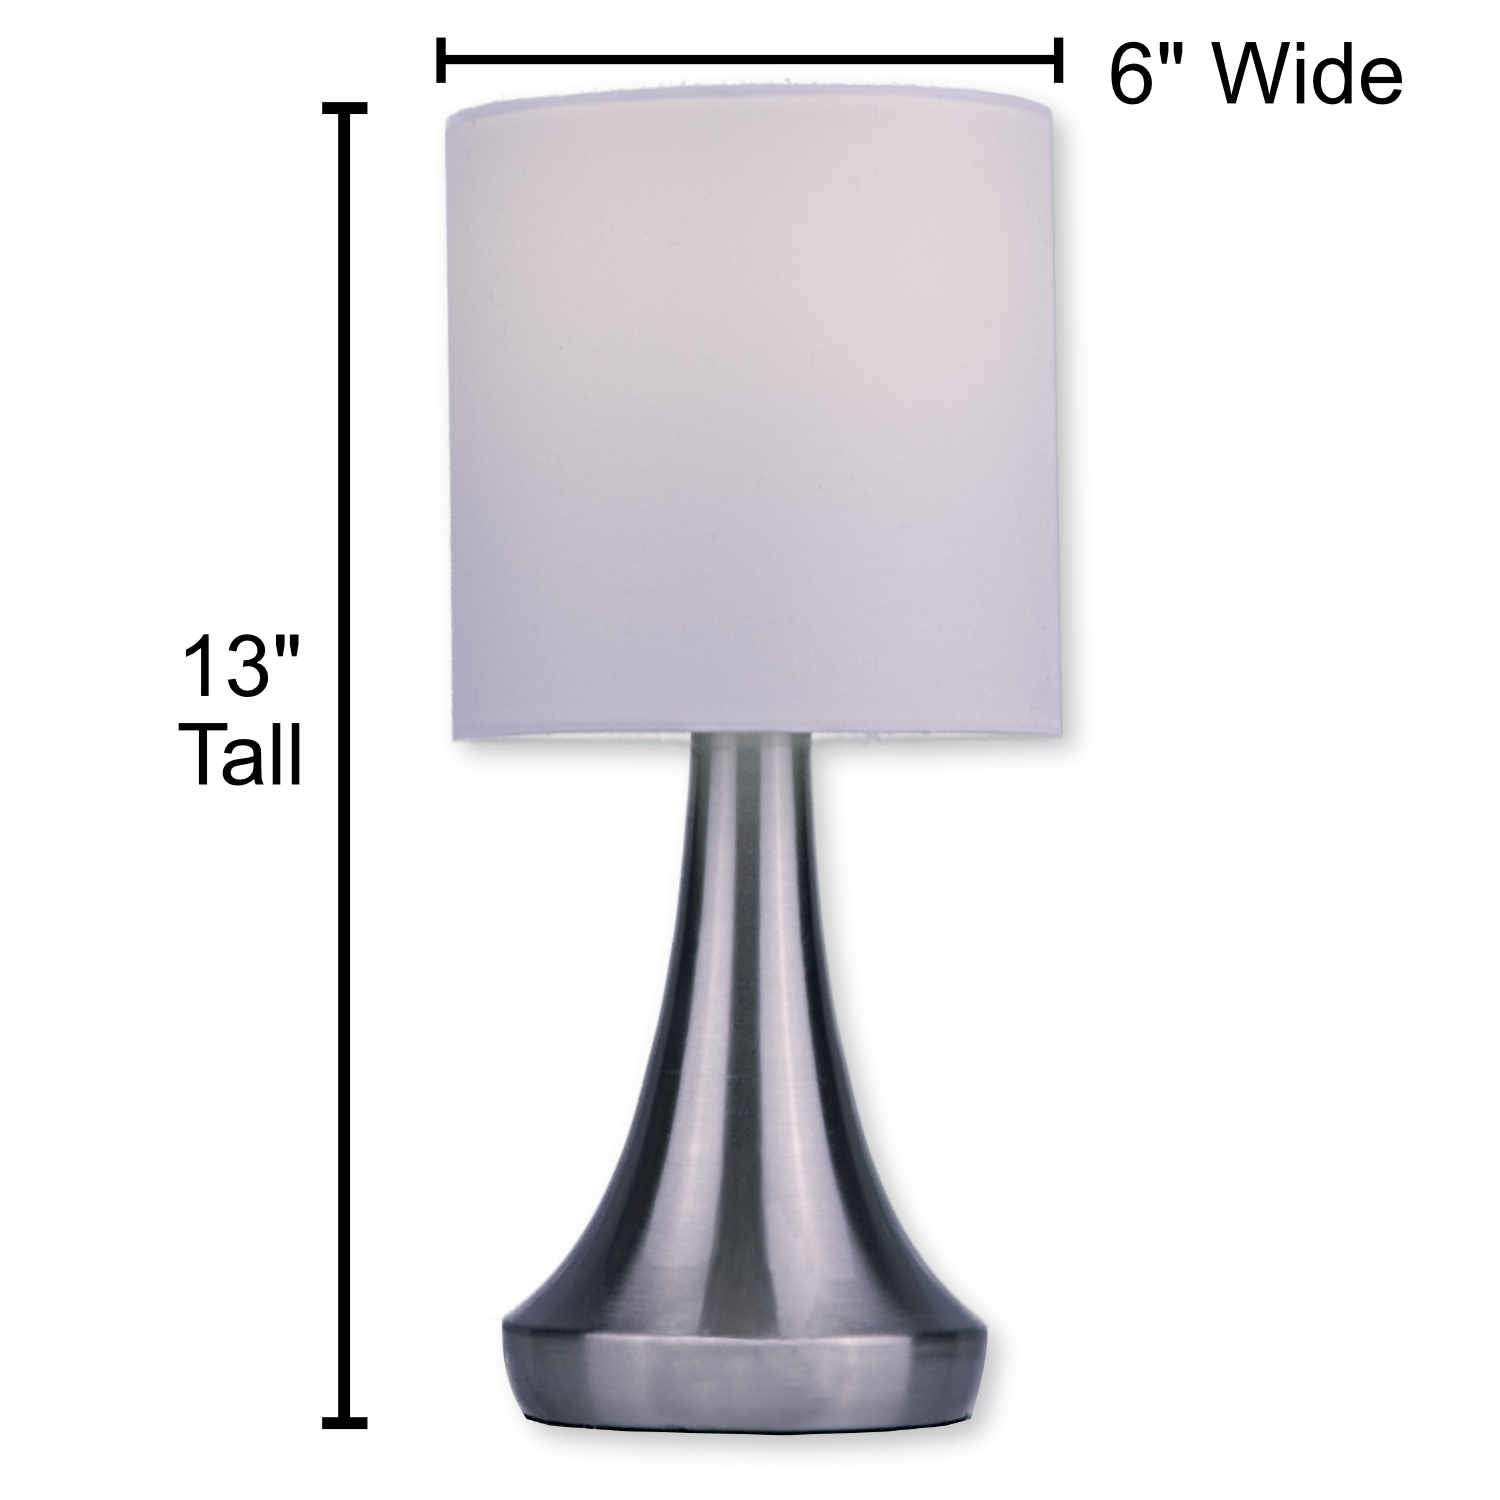 Light Accents Touch Table Lamp 13